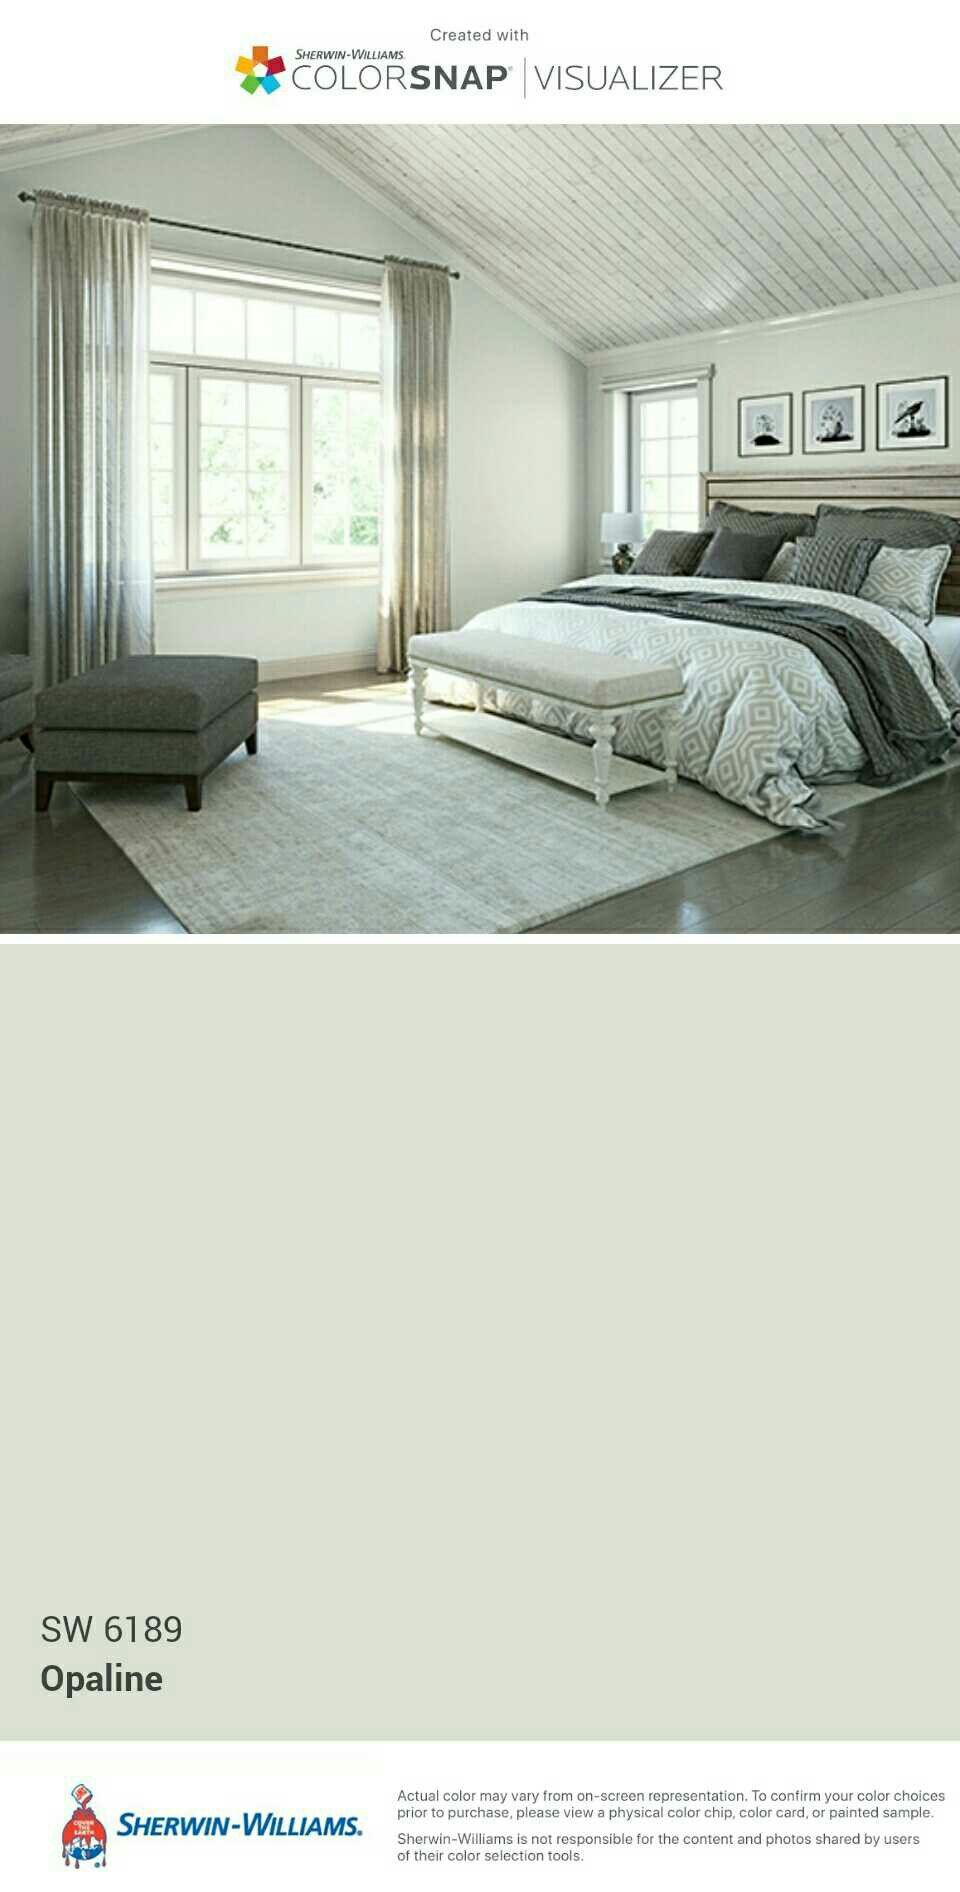 Sherwin Williams Opaline SW 6189 Master Bedroom Lolos